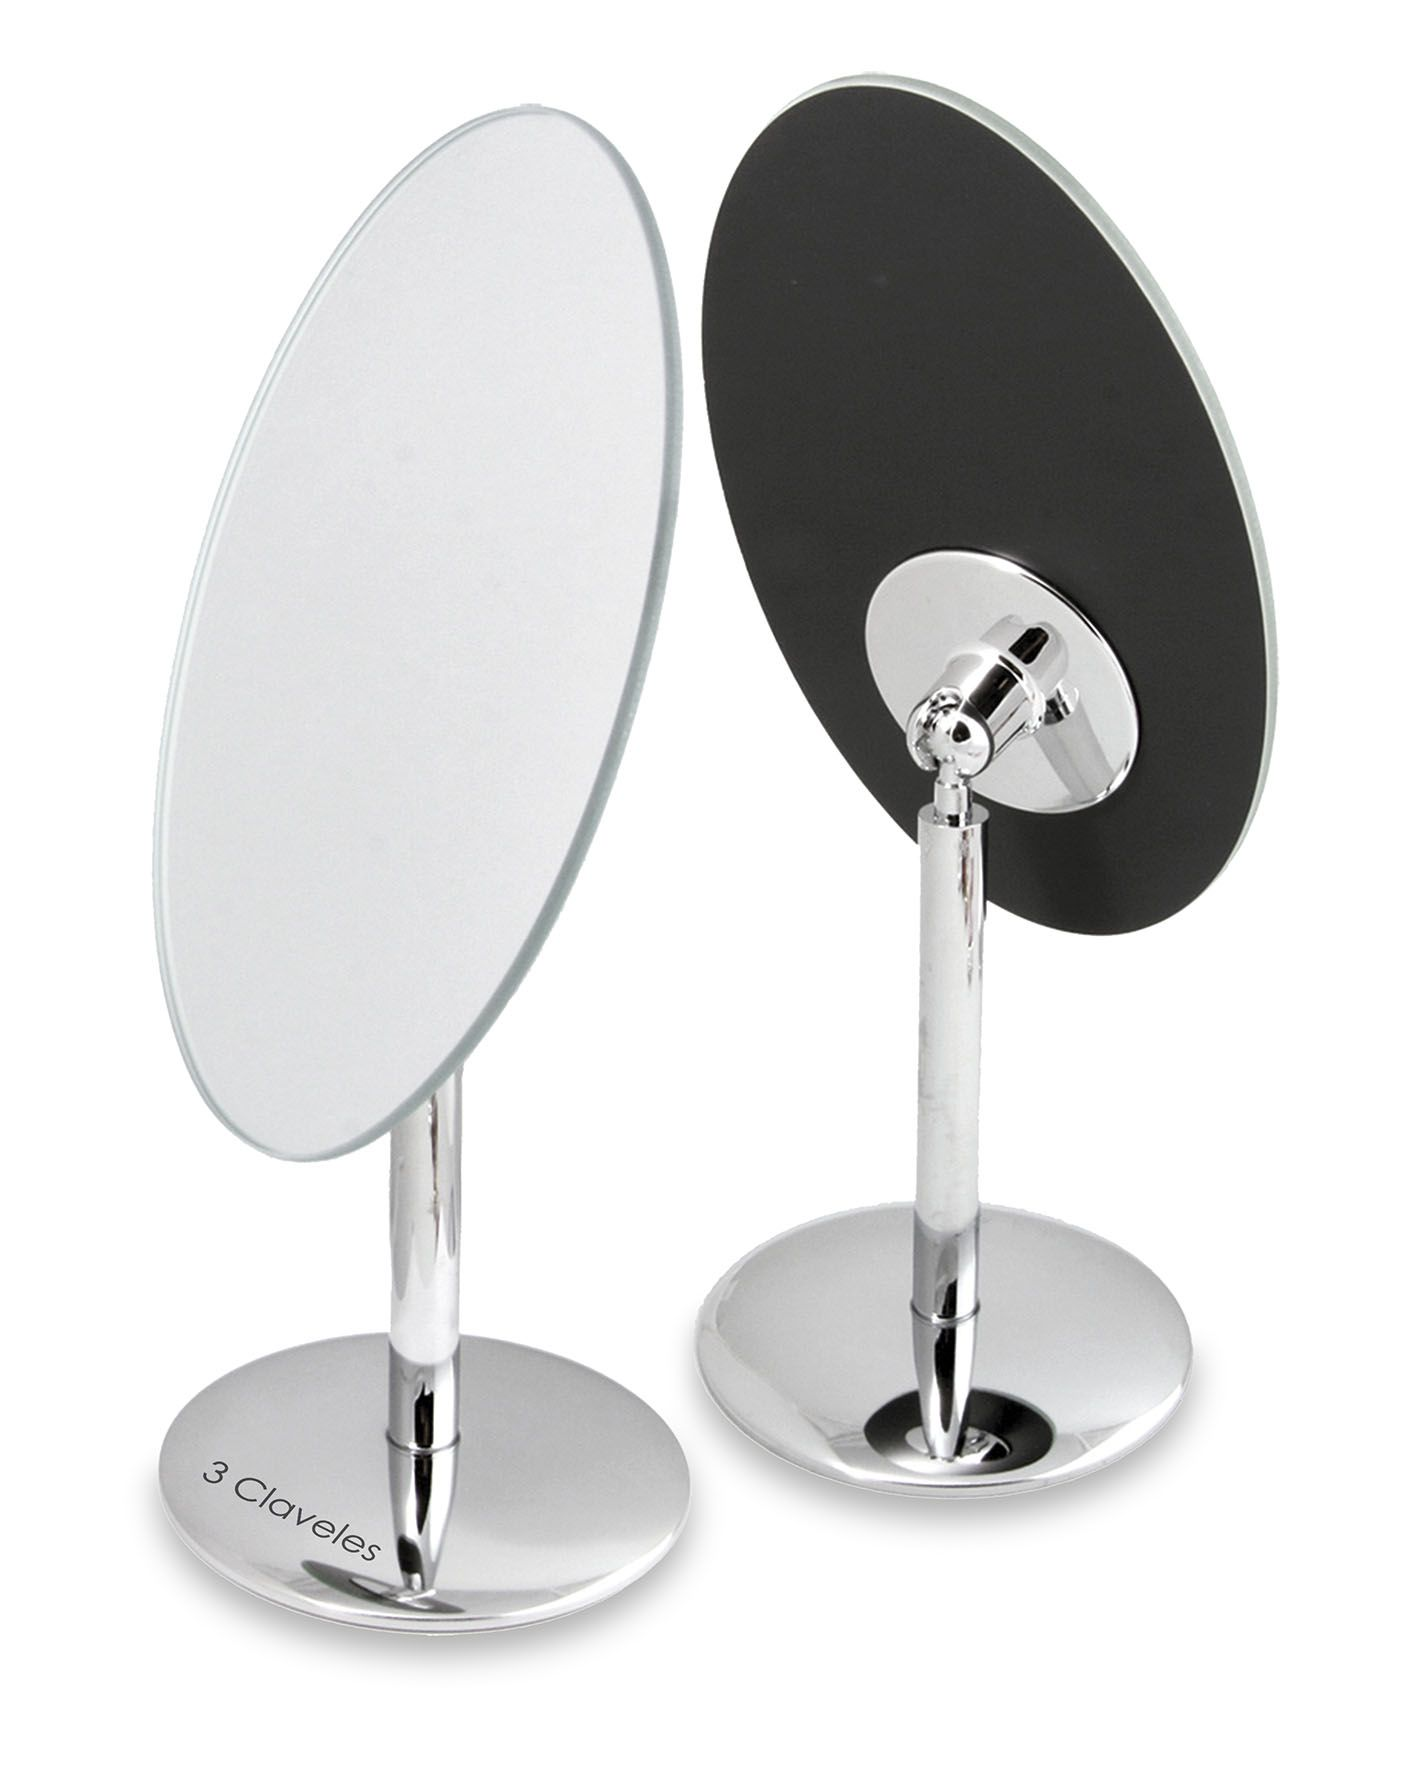 OVAL MIRROR SWIVEL BASE -13x11 cm  - 1x 3C